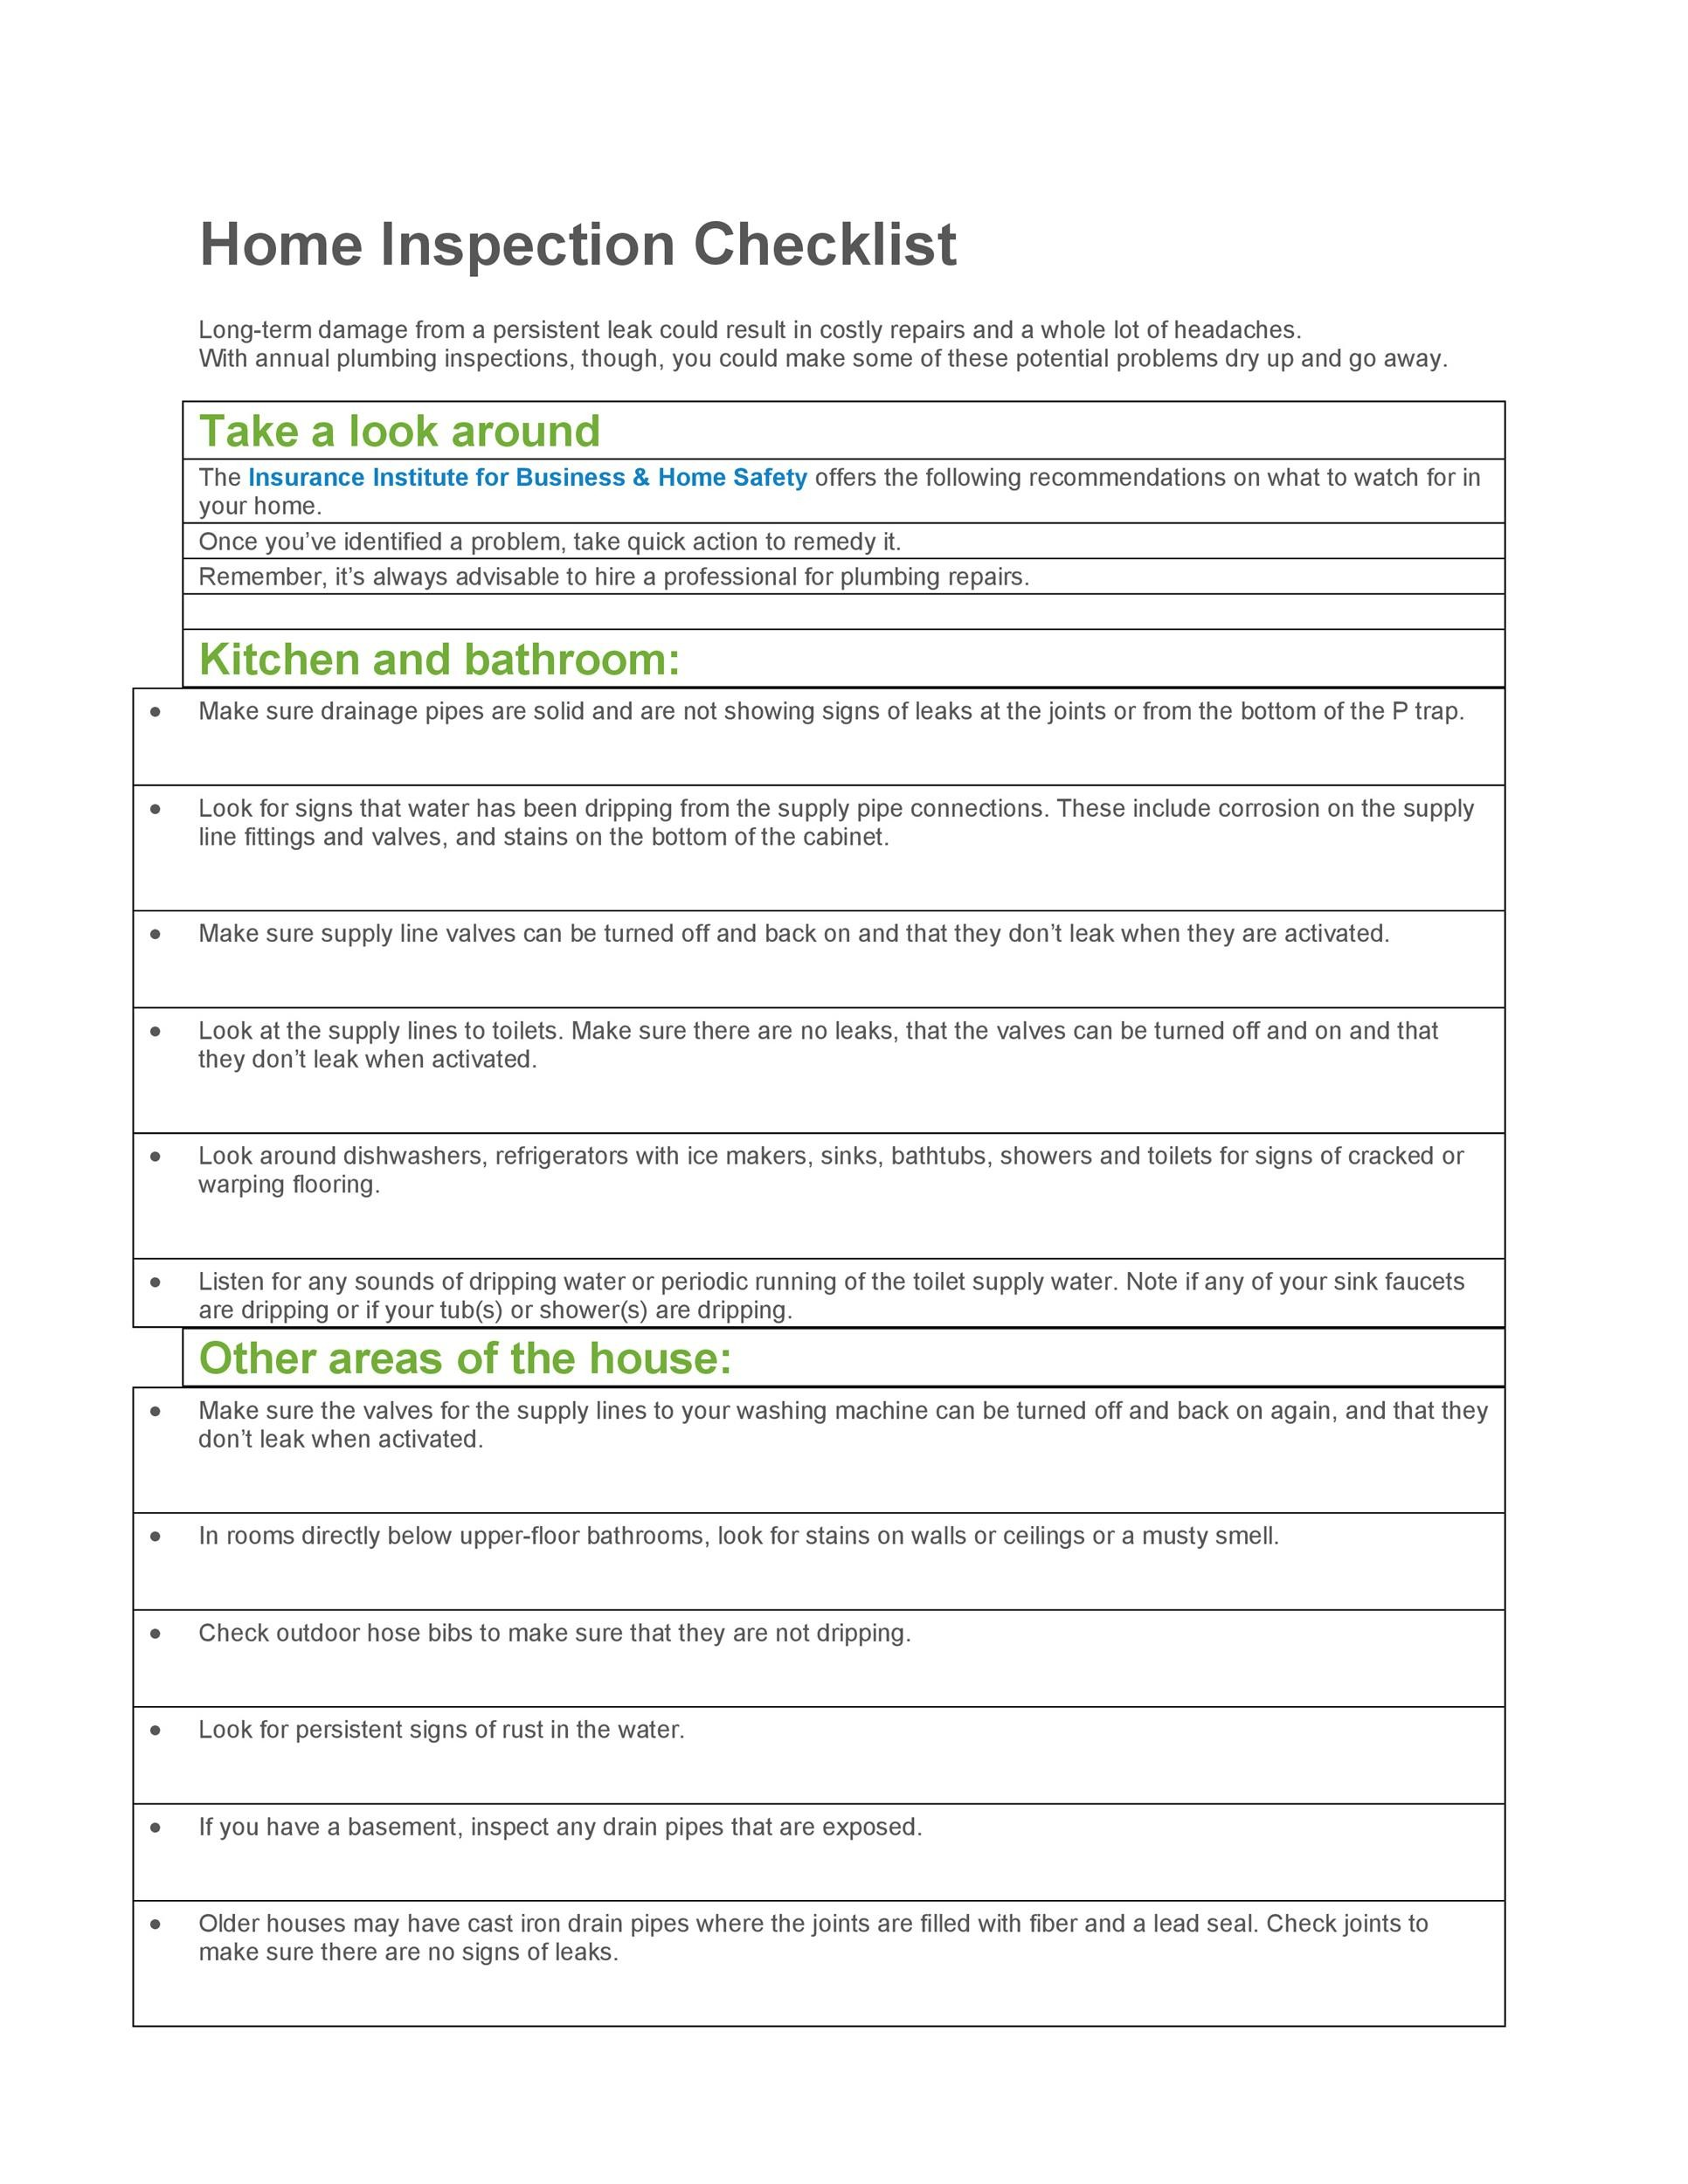 20+ Printable Home Inspection Checklists (Word, PDF) - Template Lab